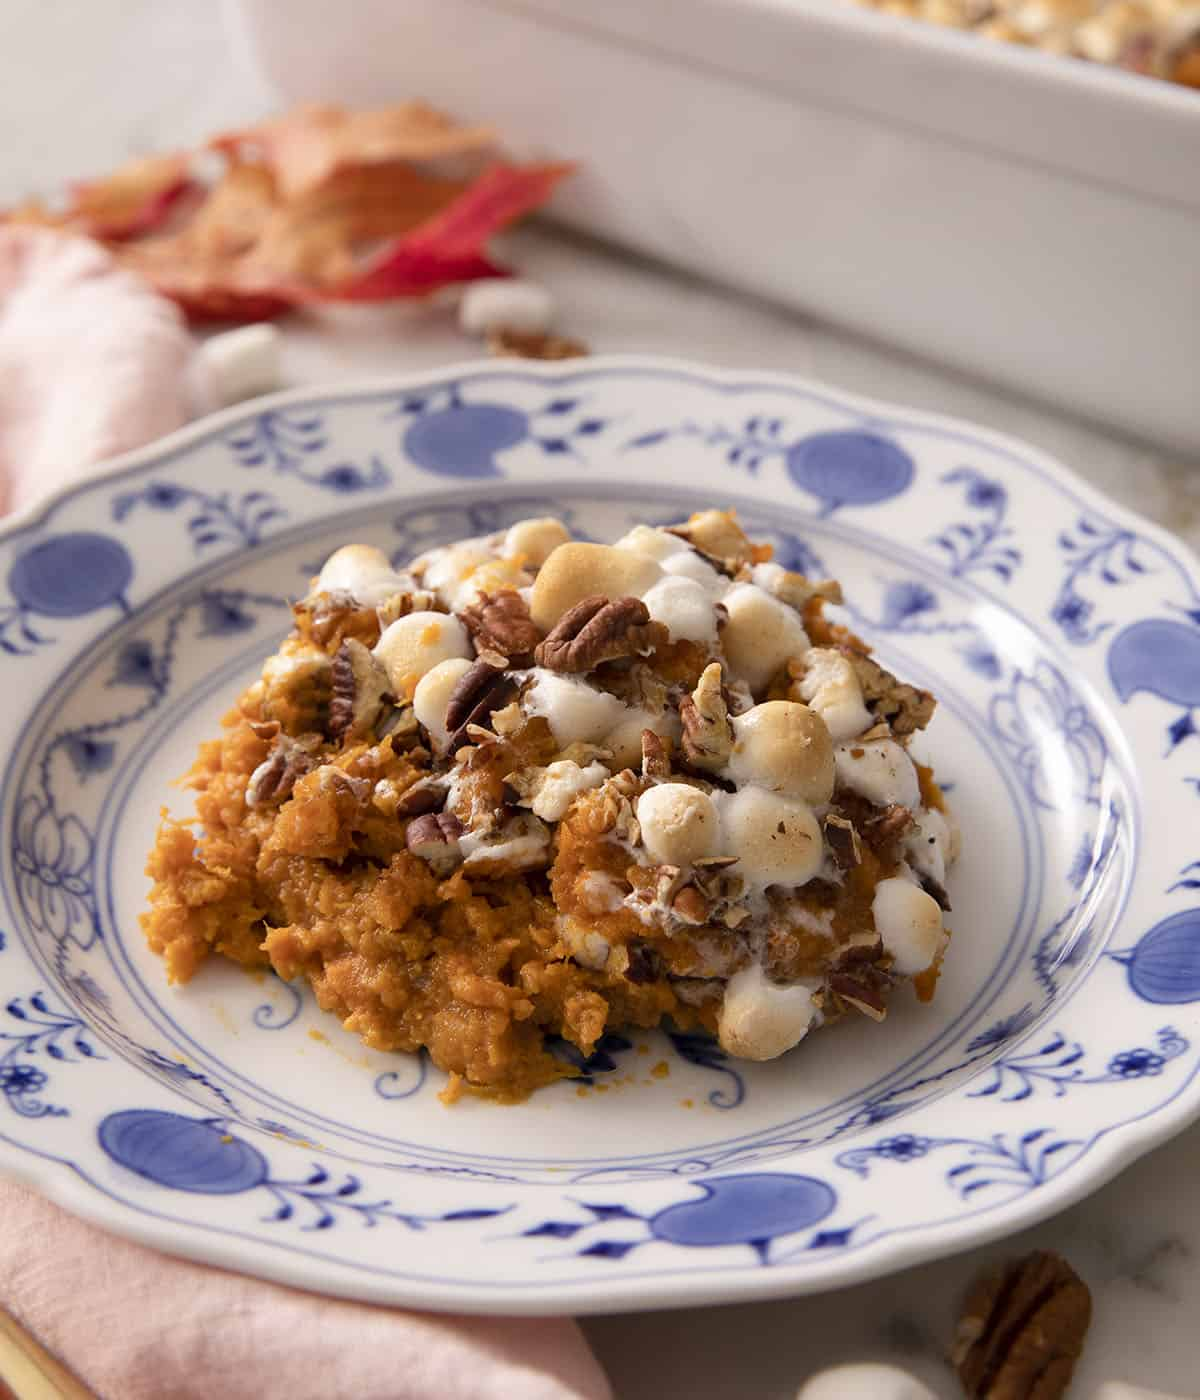 A portion of sweet potato casserole on a blue and white plate.